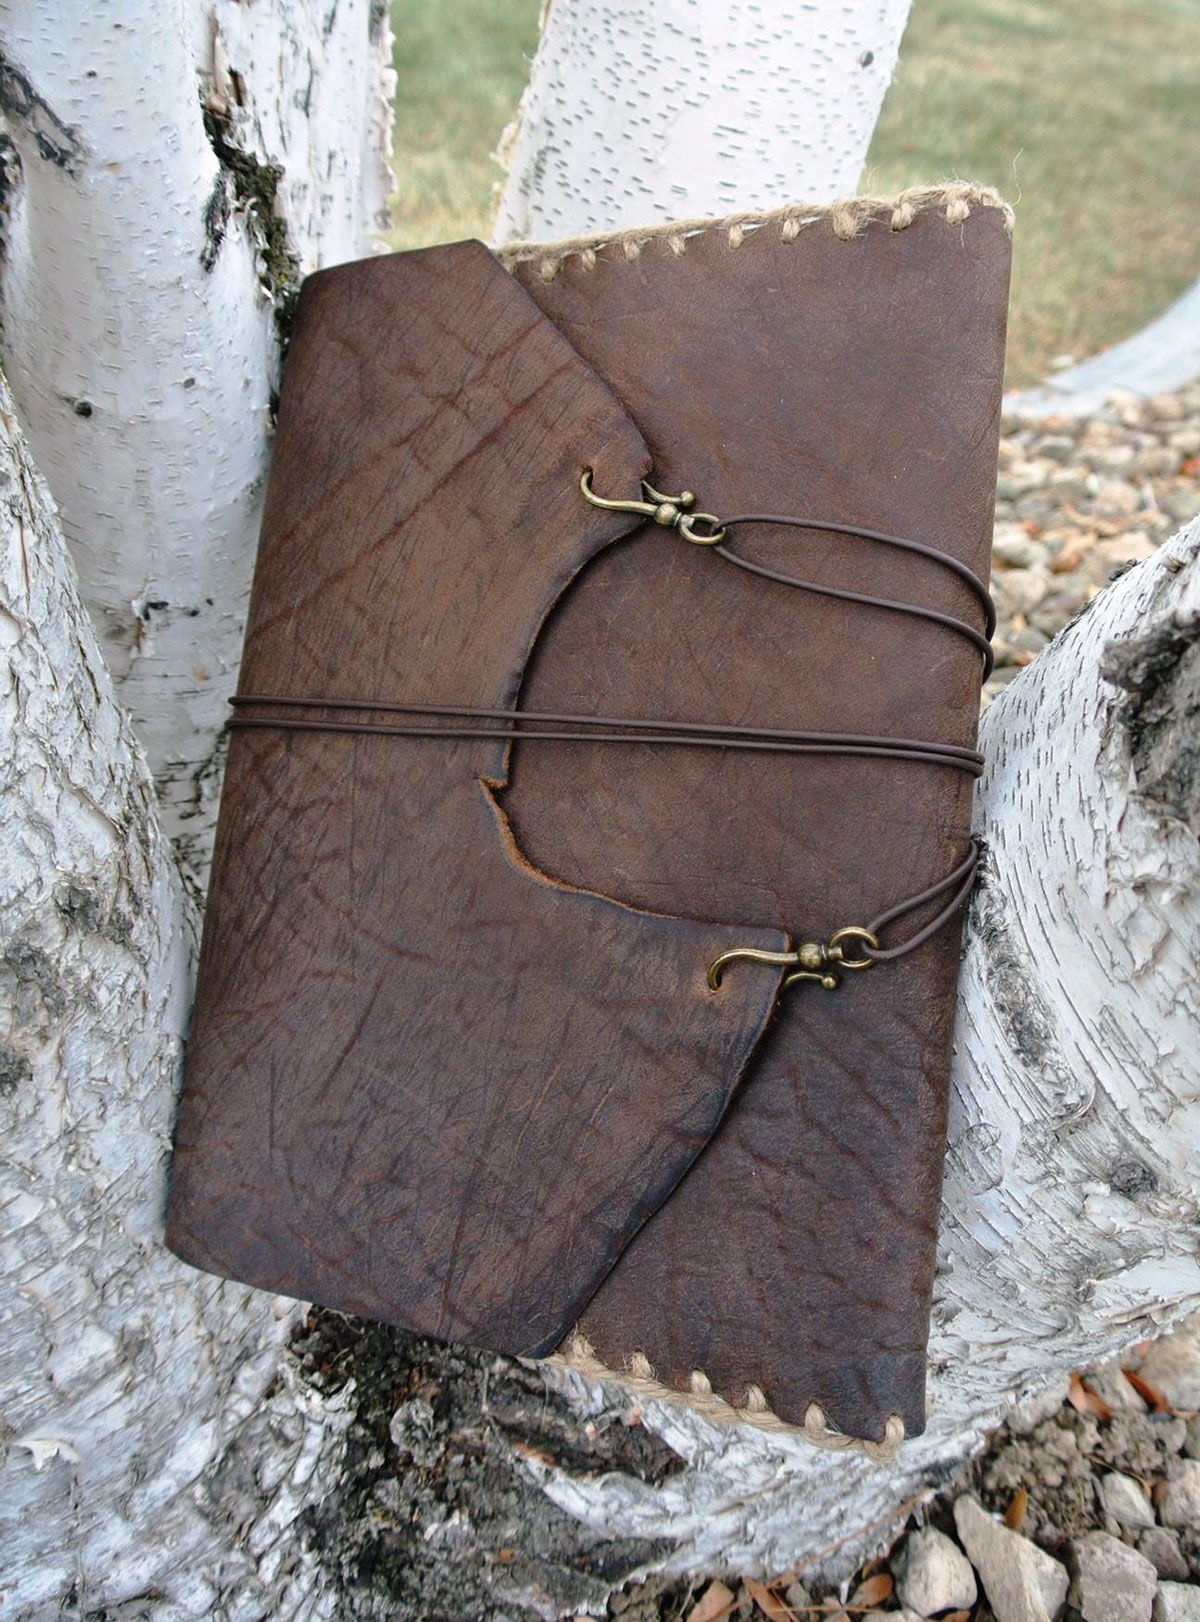 Book Cover Handmade : Handmade leather book covers on behance